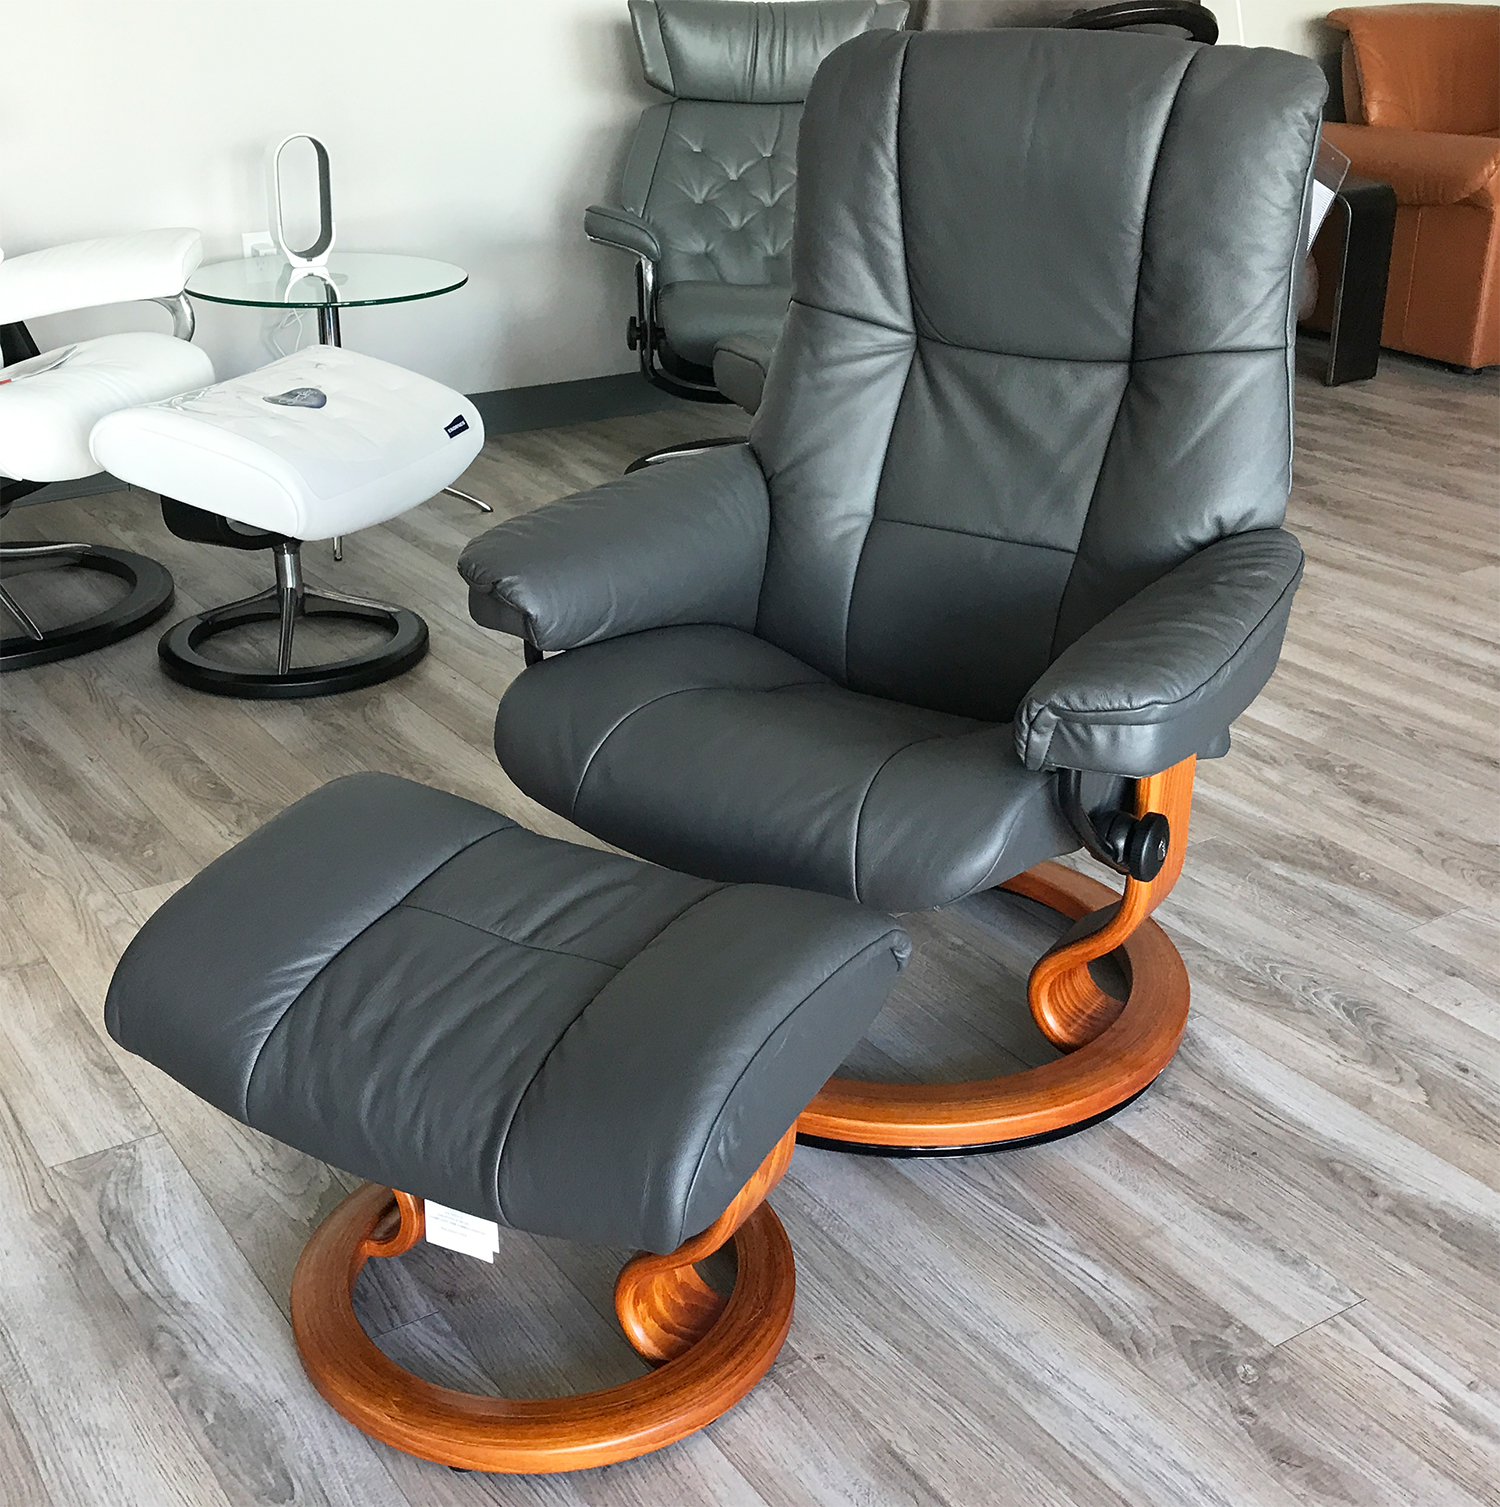 Stressless Paloma Stressless Mayfair Paloma Rock Leather Recliner Chair And Ottoman By Ekornes